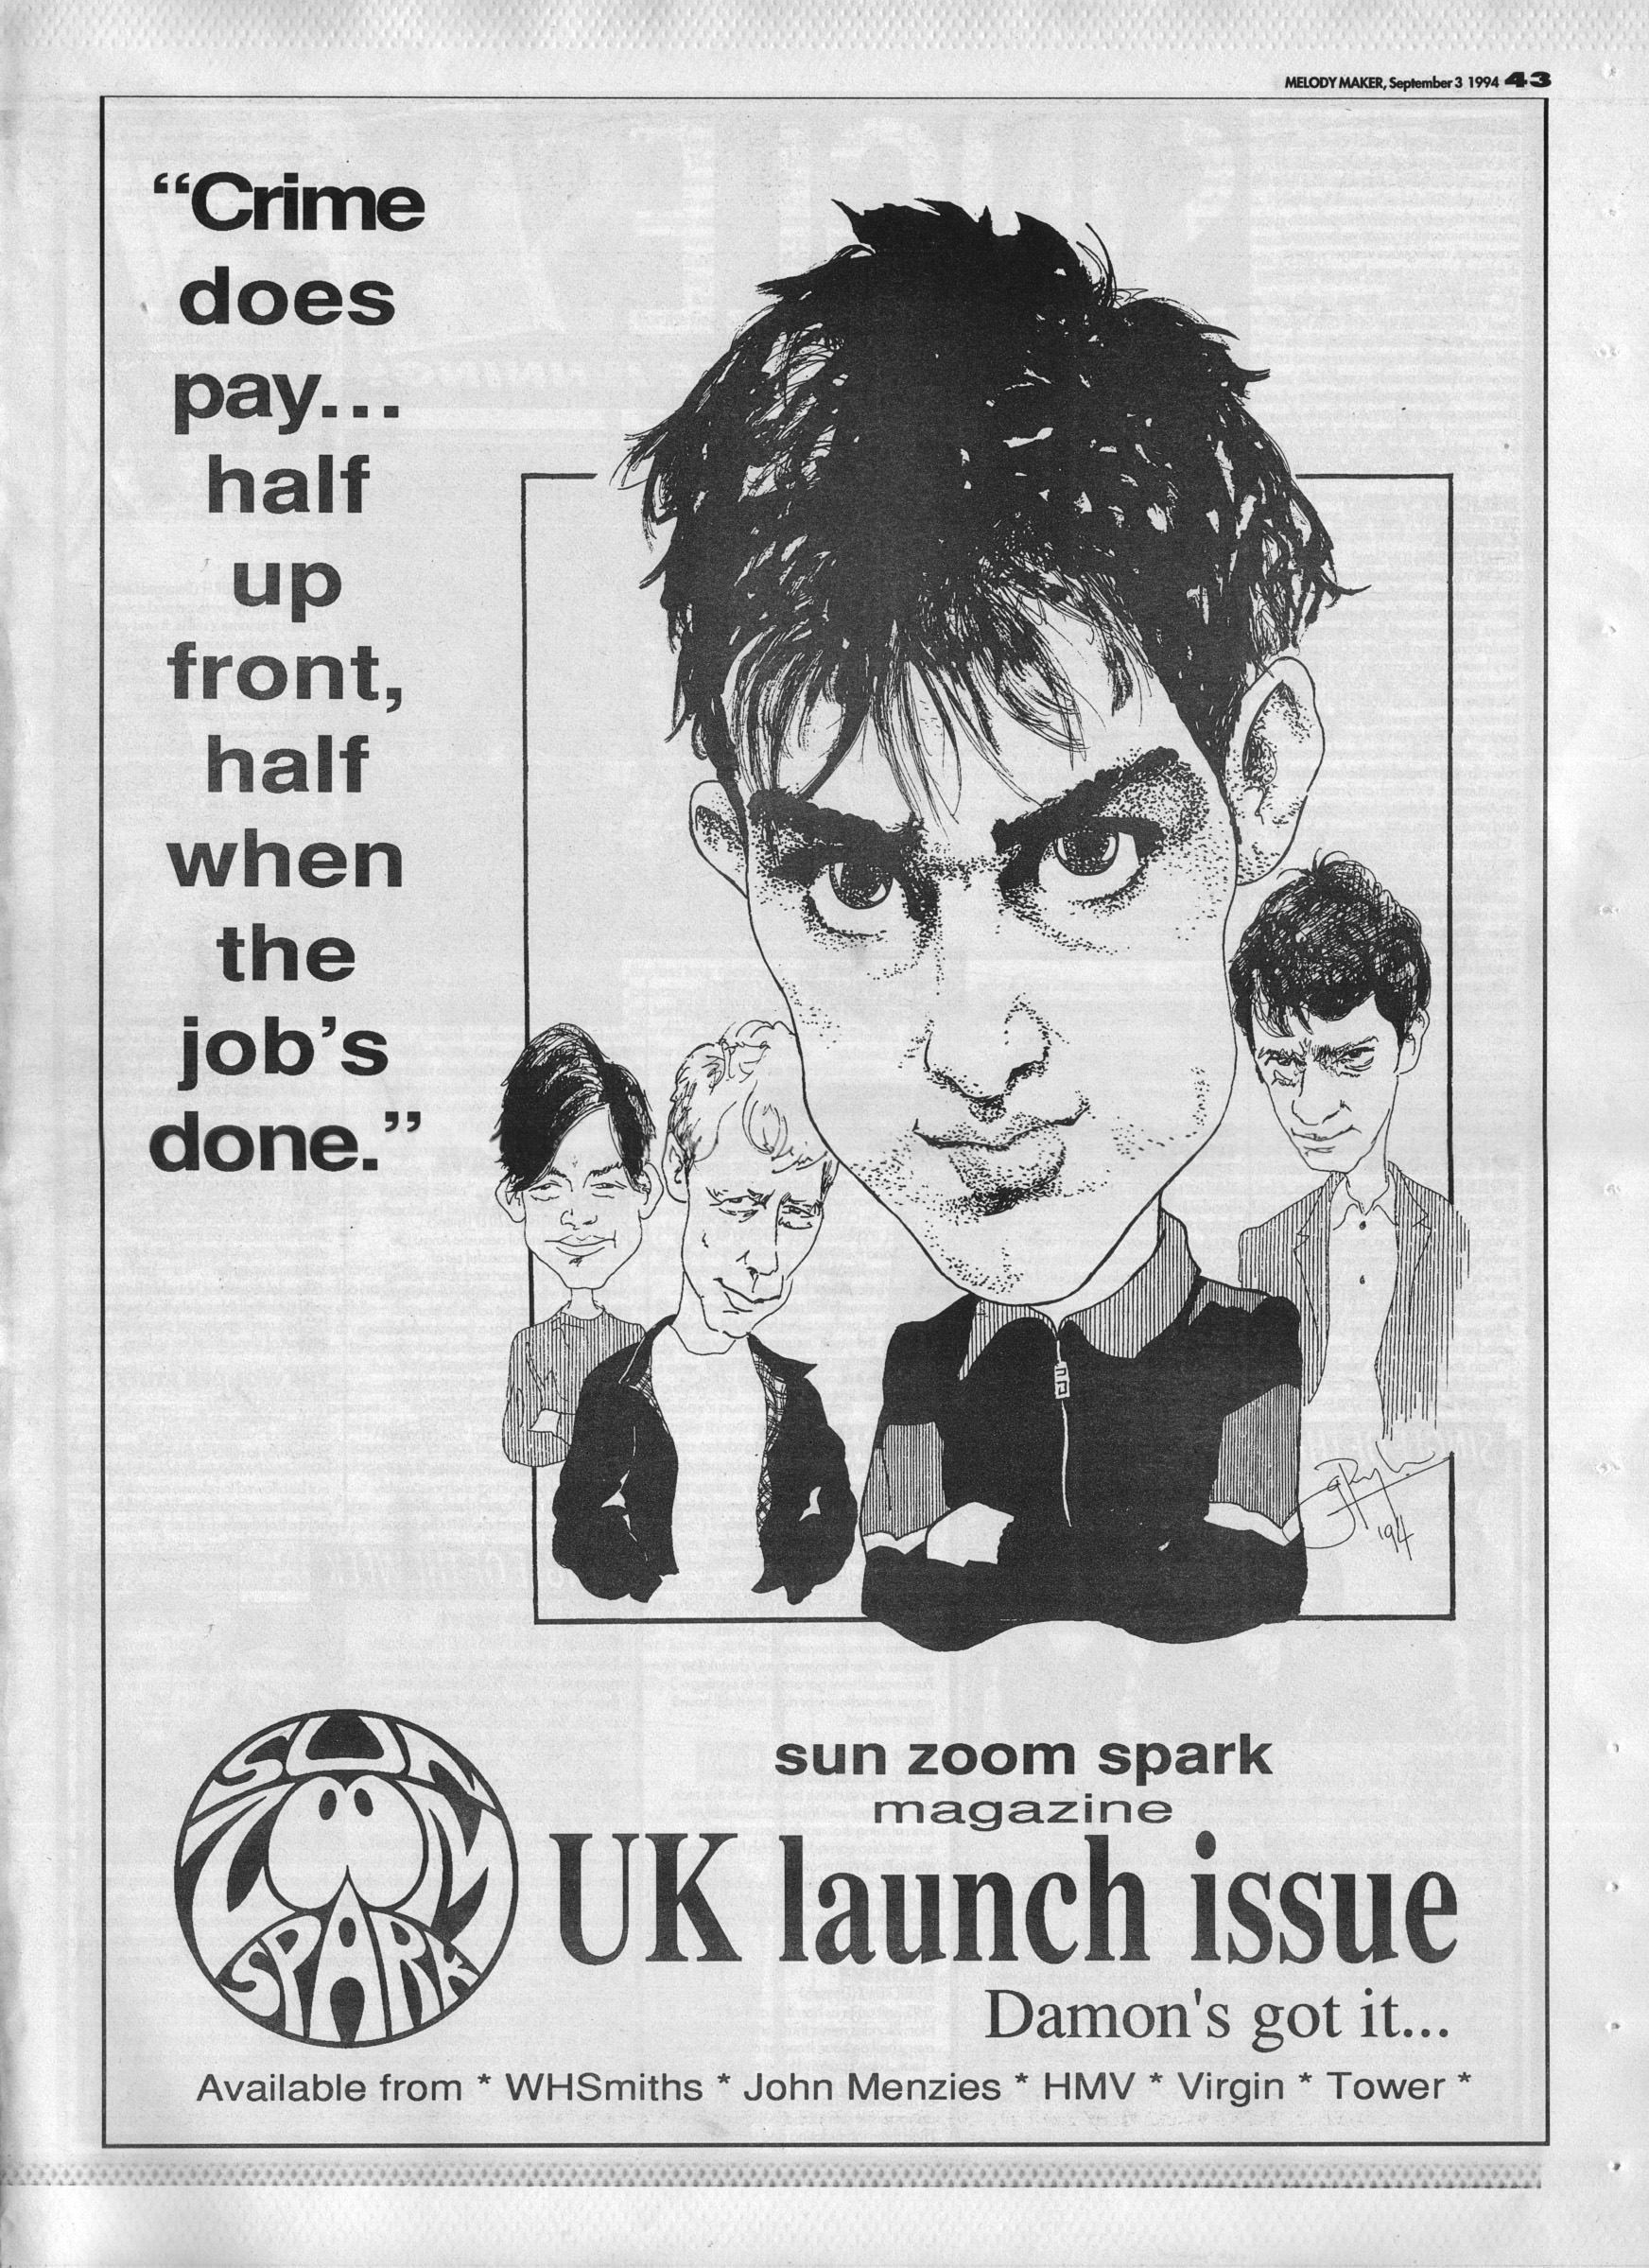 Sun Zoom Spark Launch Issue Advert 3rd September 1994 Archived Music Press